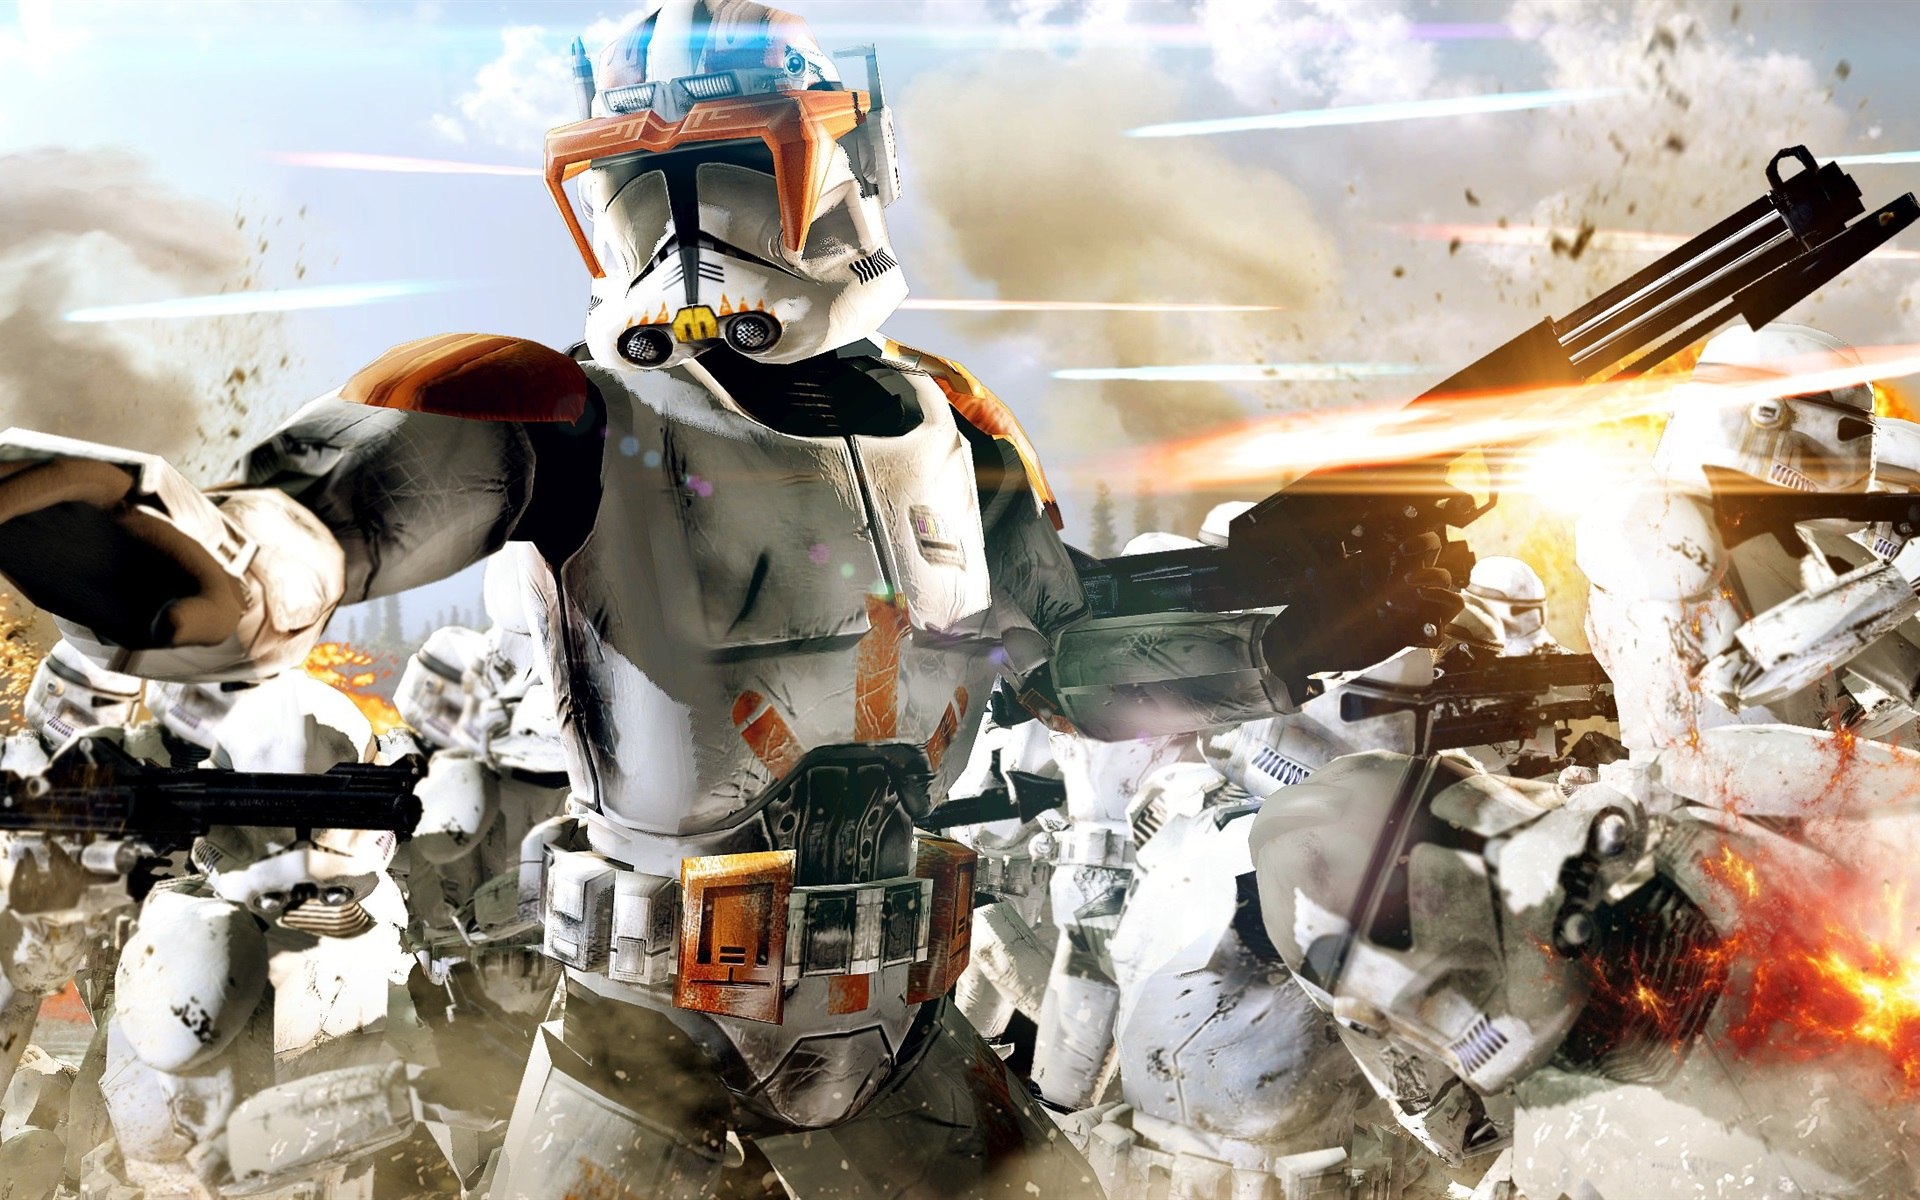 Wallpaper Star Wars The Clone Wars 1920x1200 Hd Picture Image